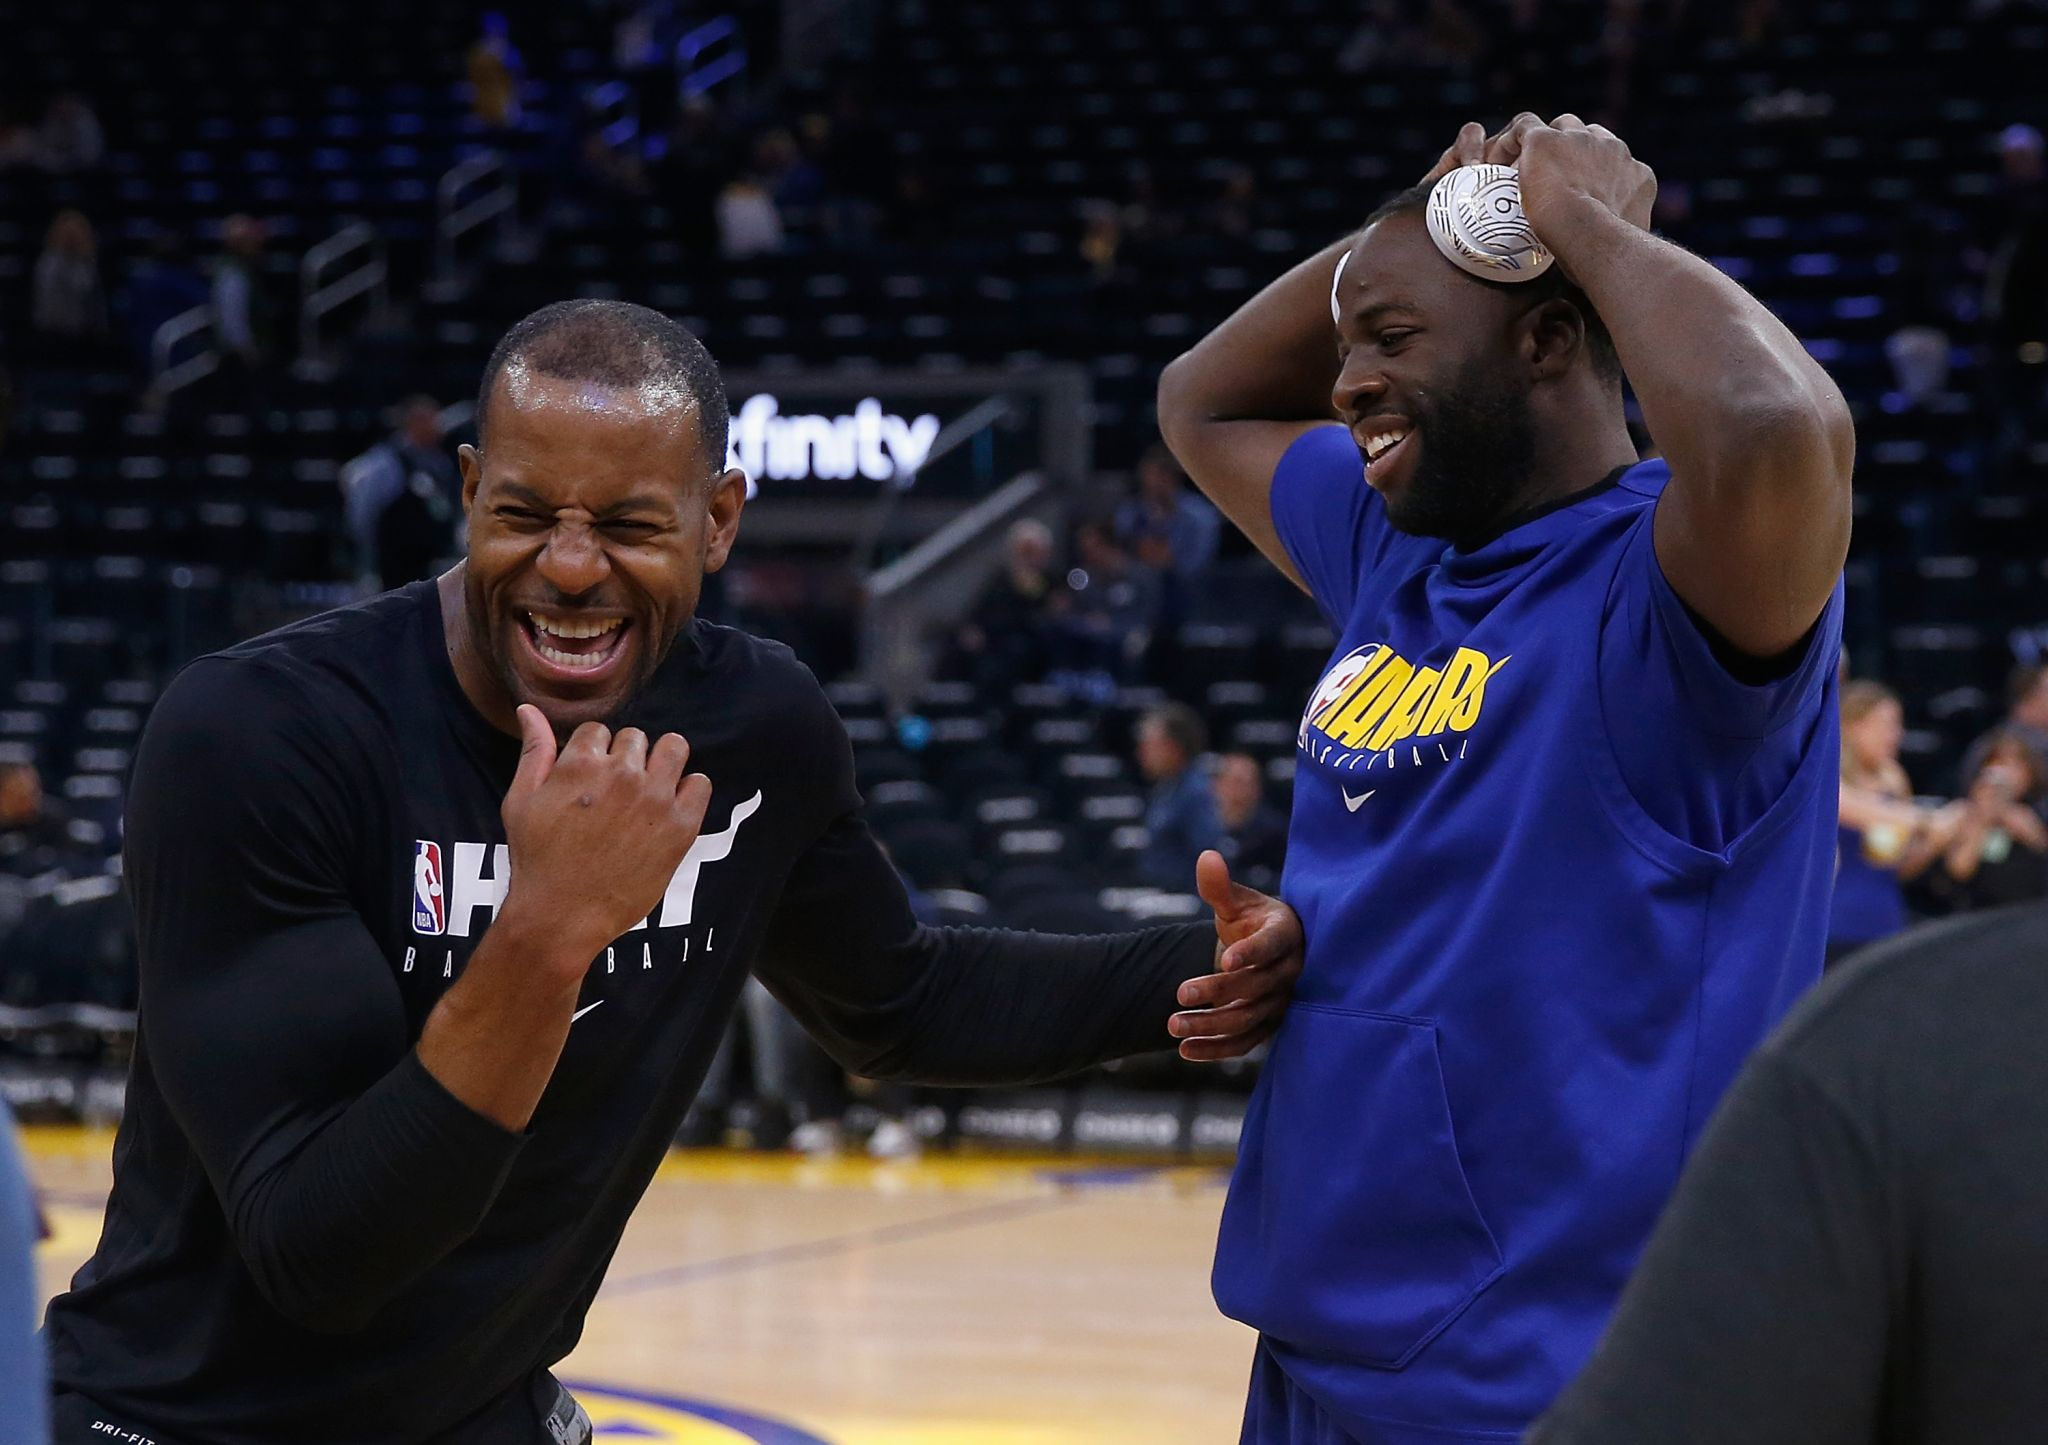 Andre Iguodala probably made so much money on his Zoom investment